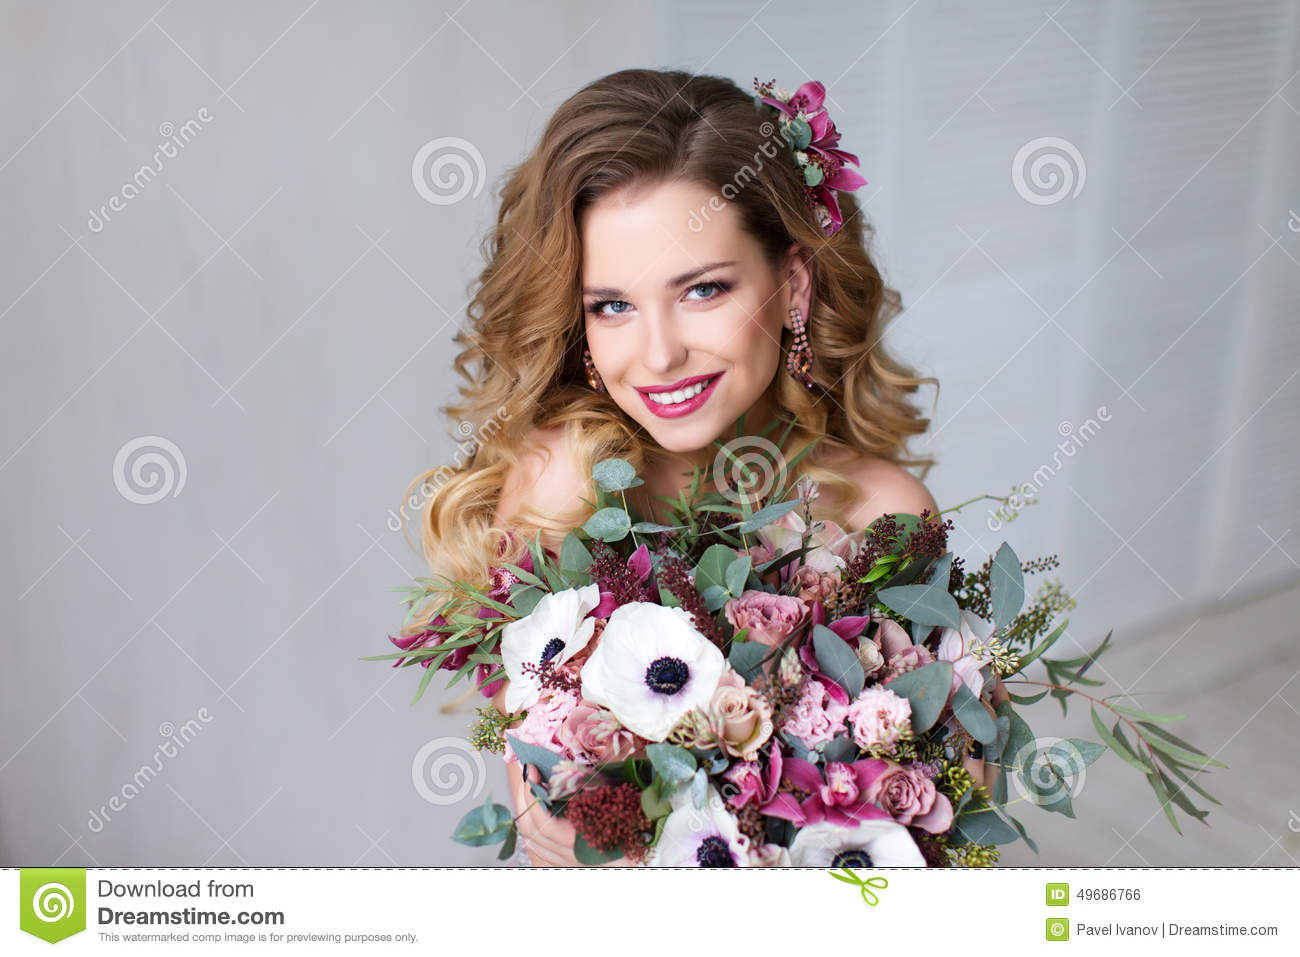 Fashion Beauty Model Girl With Flowers Hair. Stock Photo